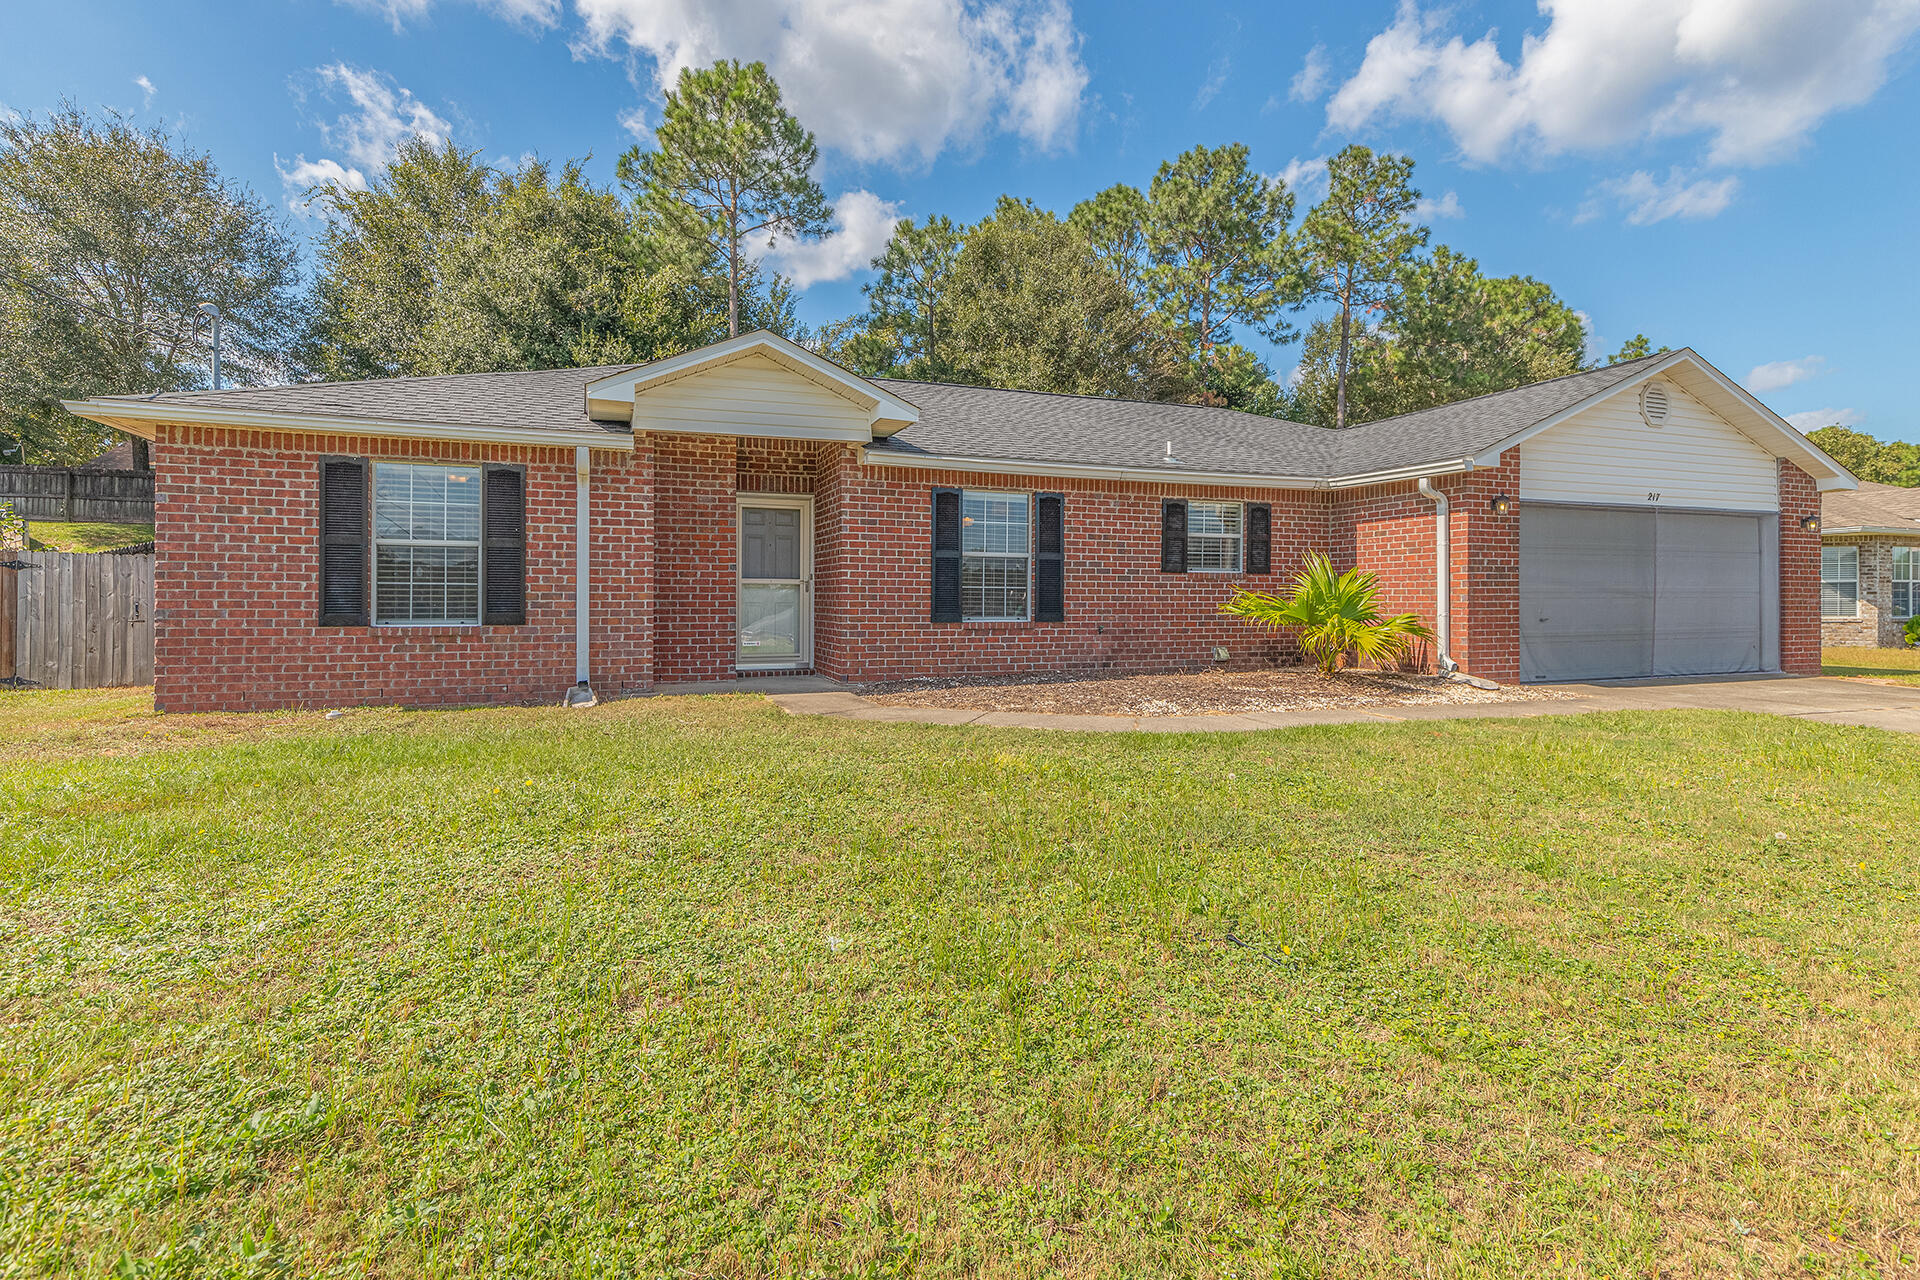 Adorable BRICK 3 bedroom, 2 bath home perfectly located in south Crestview!Featuring a spacious livi